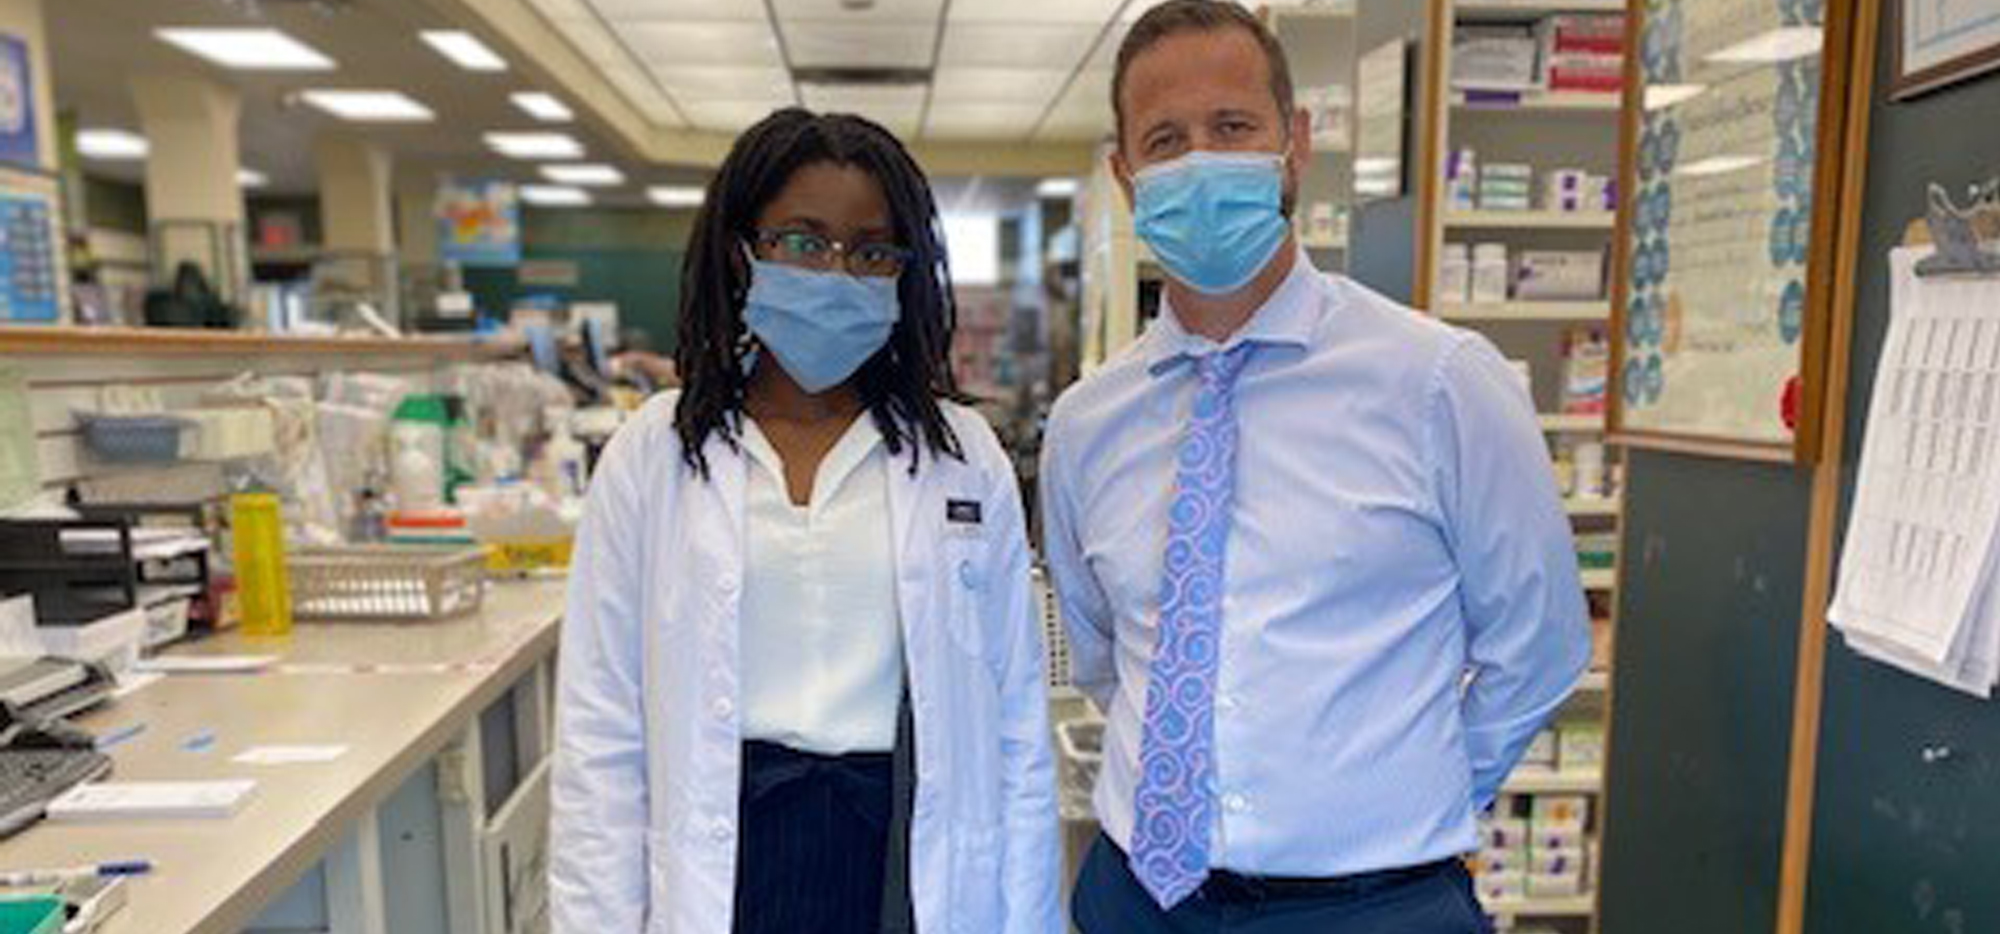 Carolyn Lawrence and Steven Bond wearing masks in the pharmacy